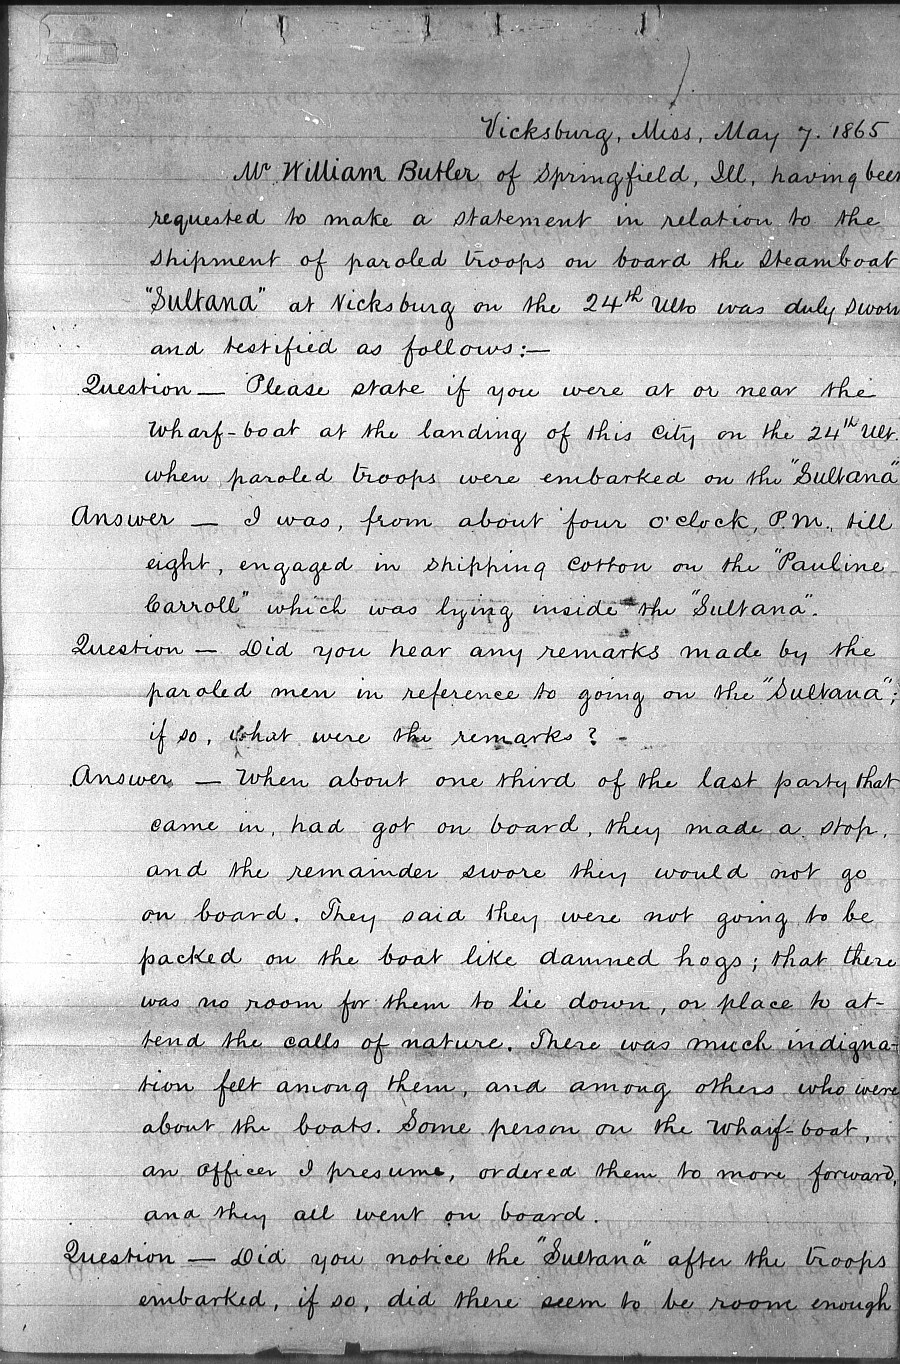 Testimony-of-William-Butler-a-cook-aboard-the-SS-Sultana-given-to-the Washburn-Committee-1